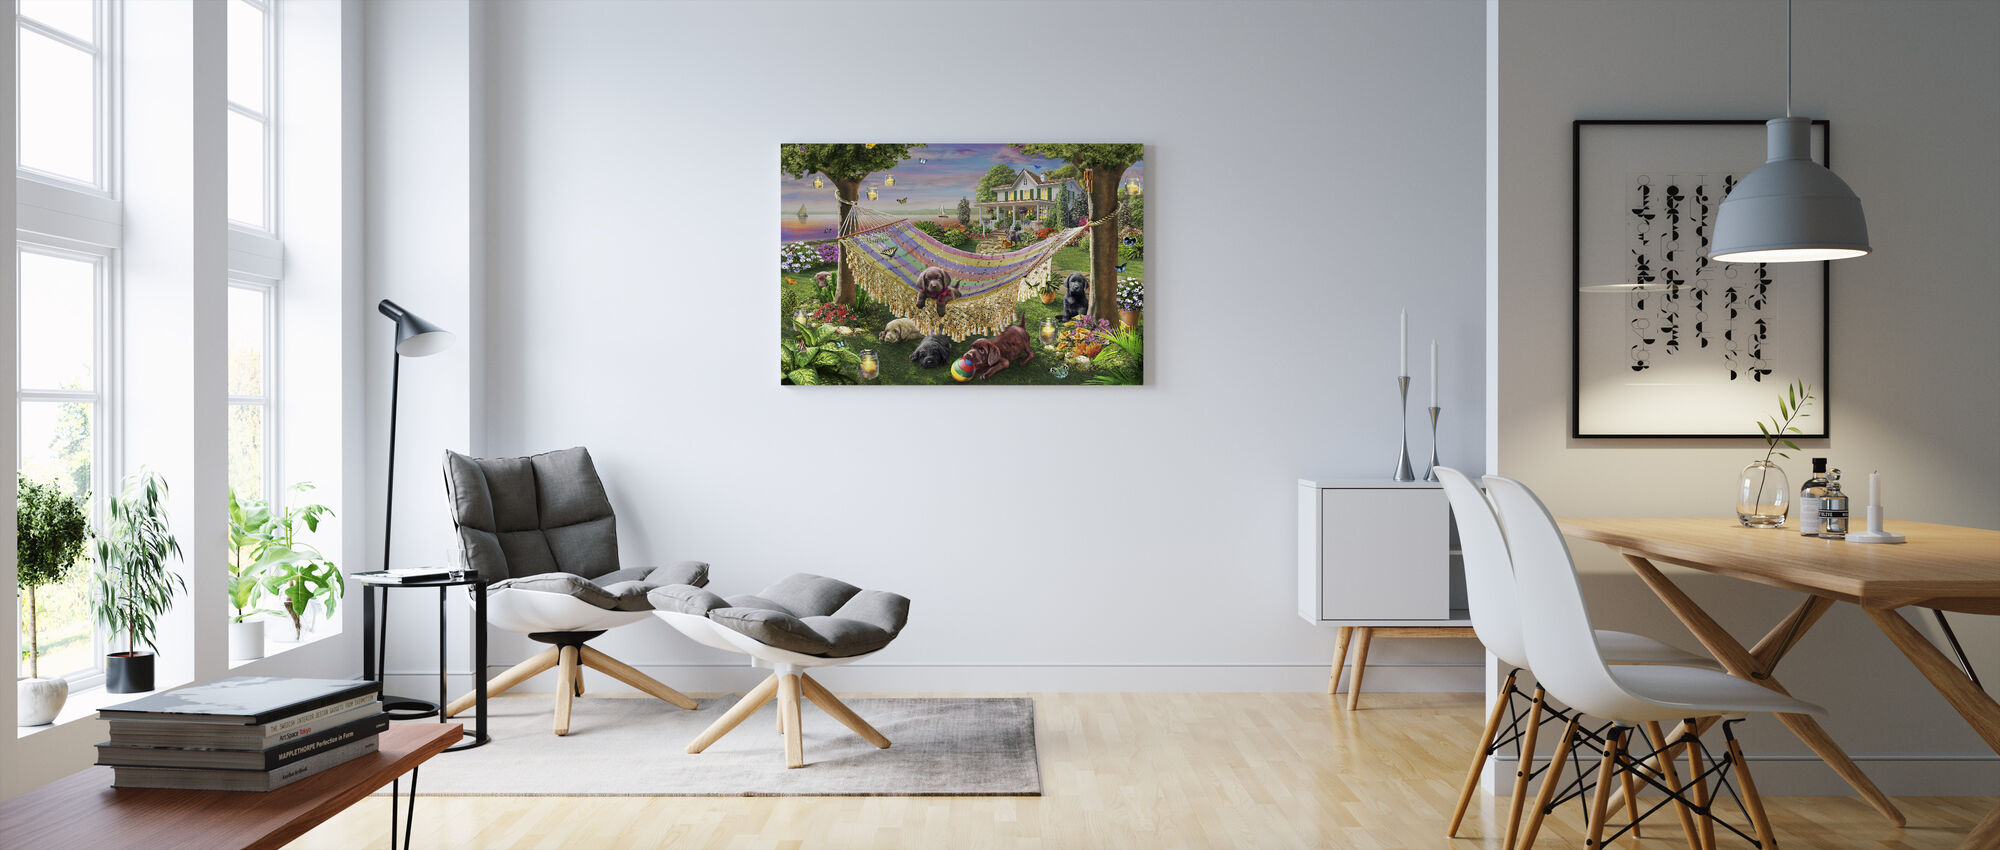 Puppies And Butterflies - Canvas print - Living Room